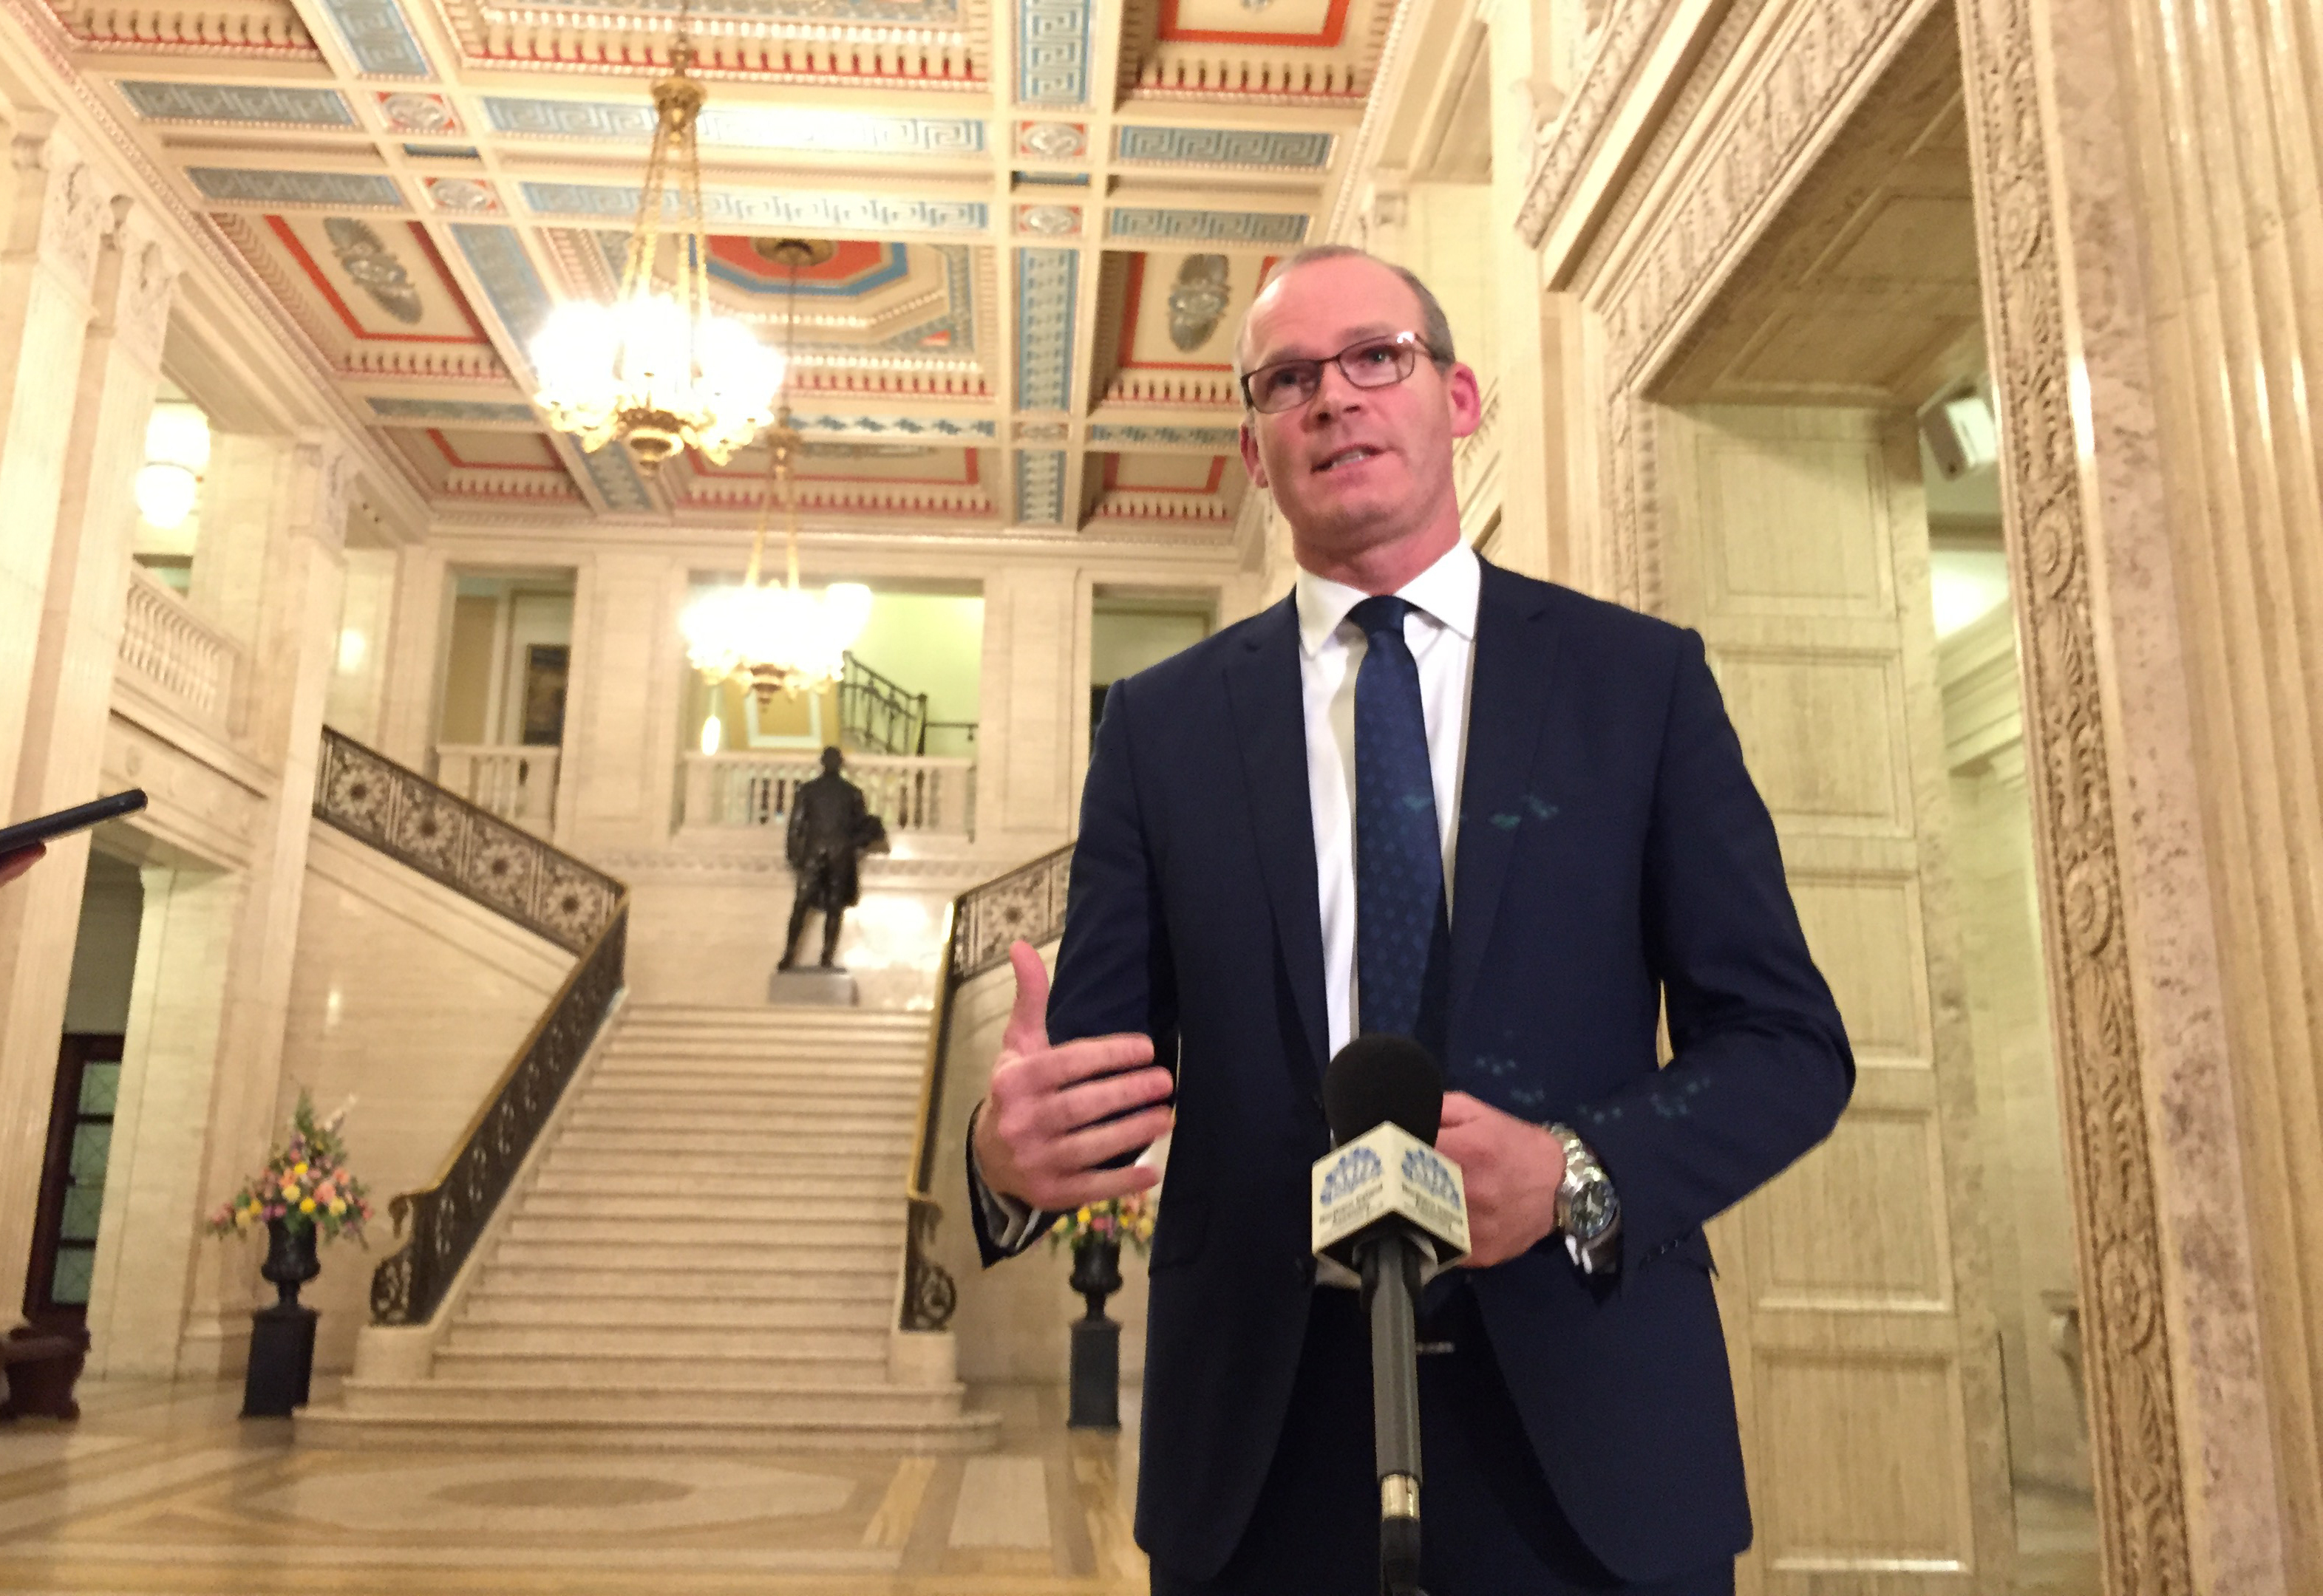 Brexit deadlock not game of chicken, says Simon Coveney